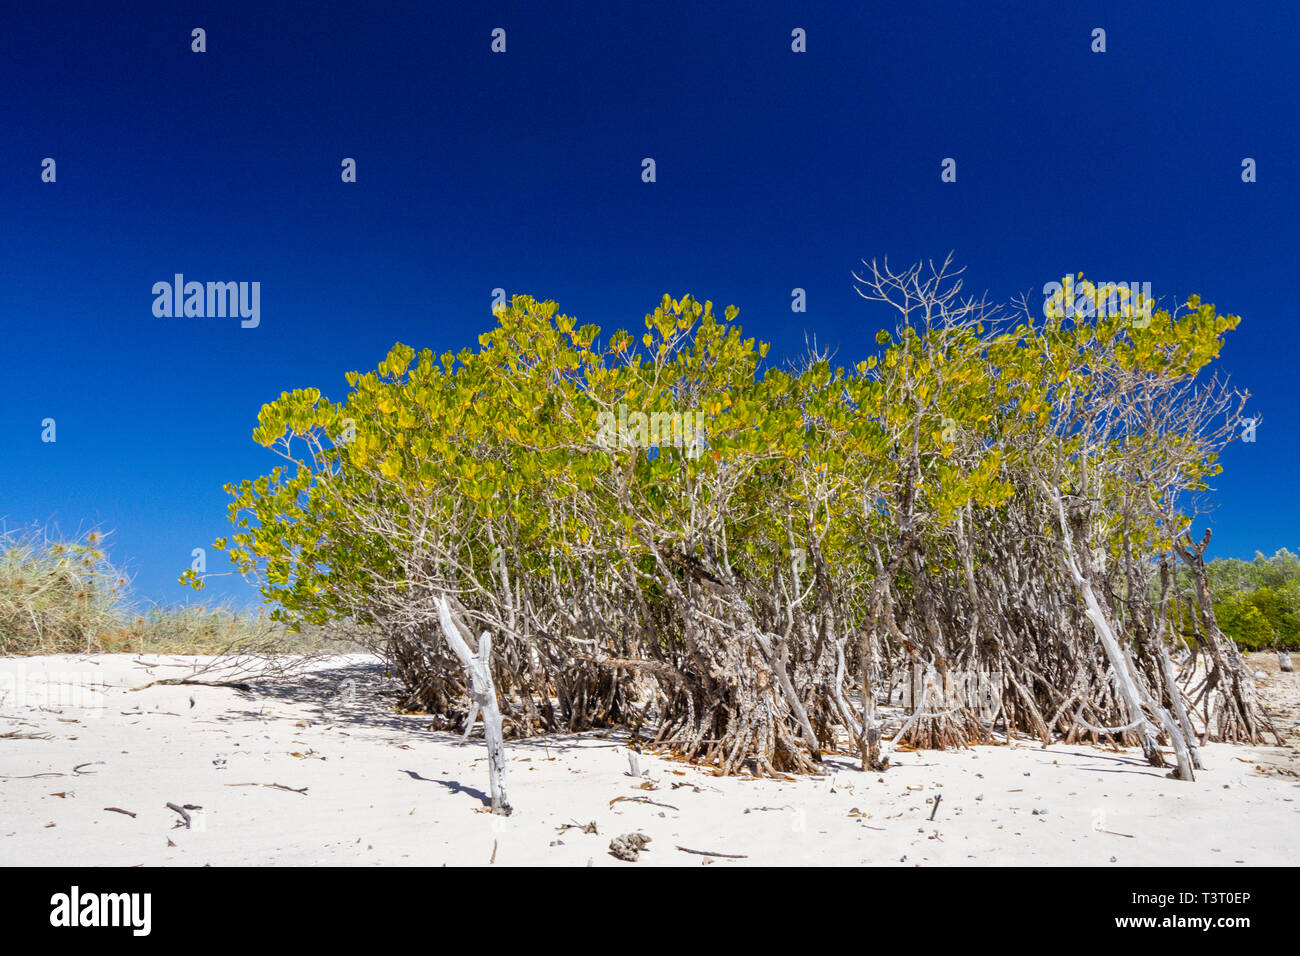 Mangroves growing on sandy beach at upper edge of intertidal zone at Port Smith Western Australia - Stock Image